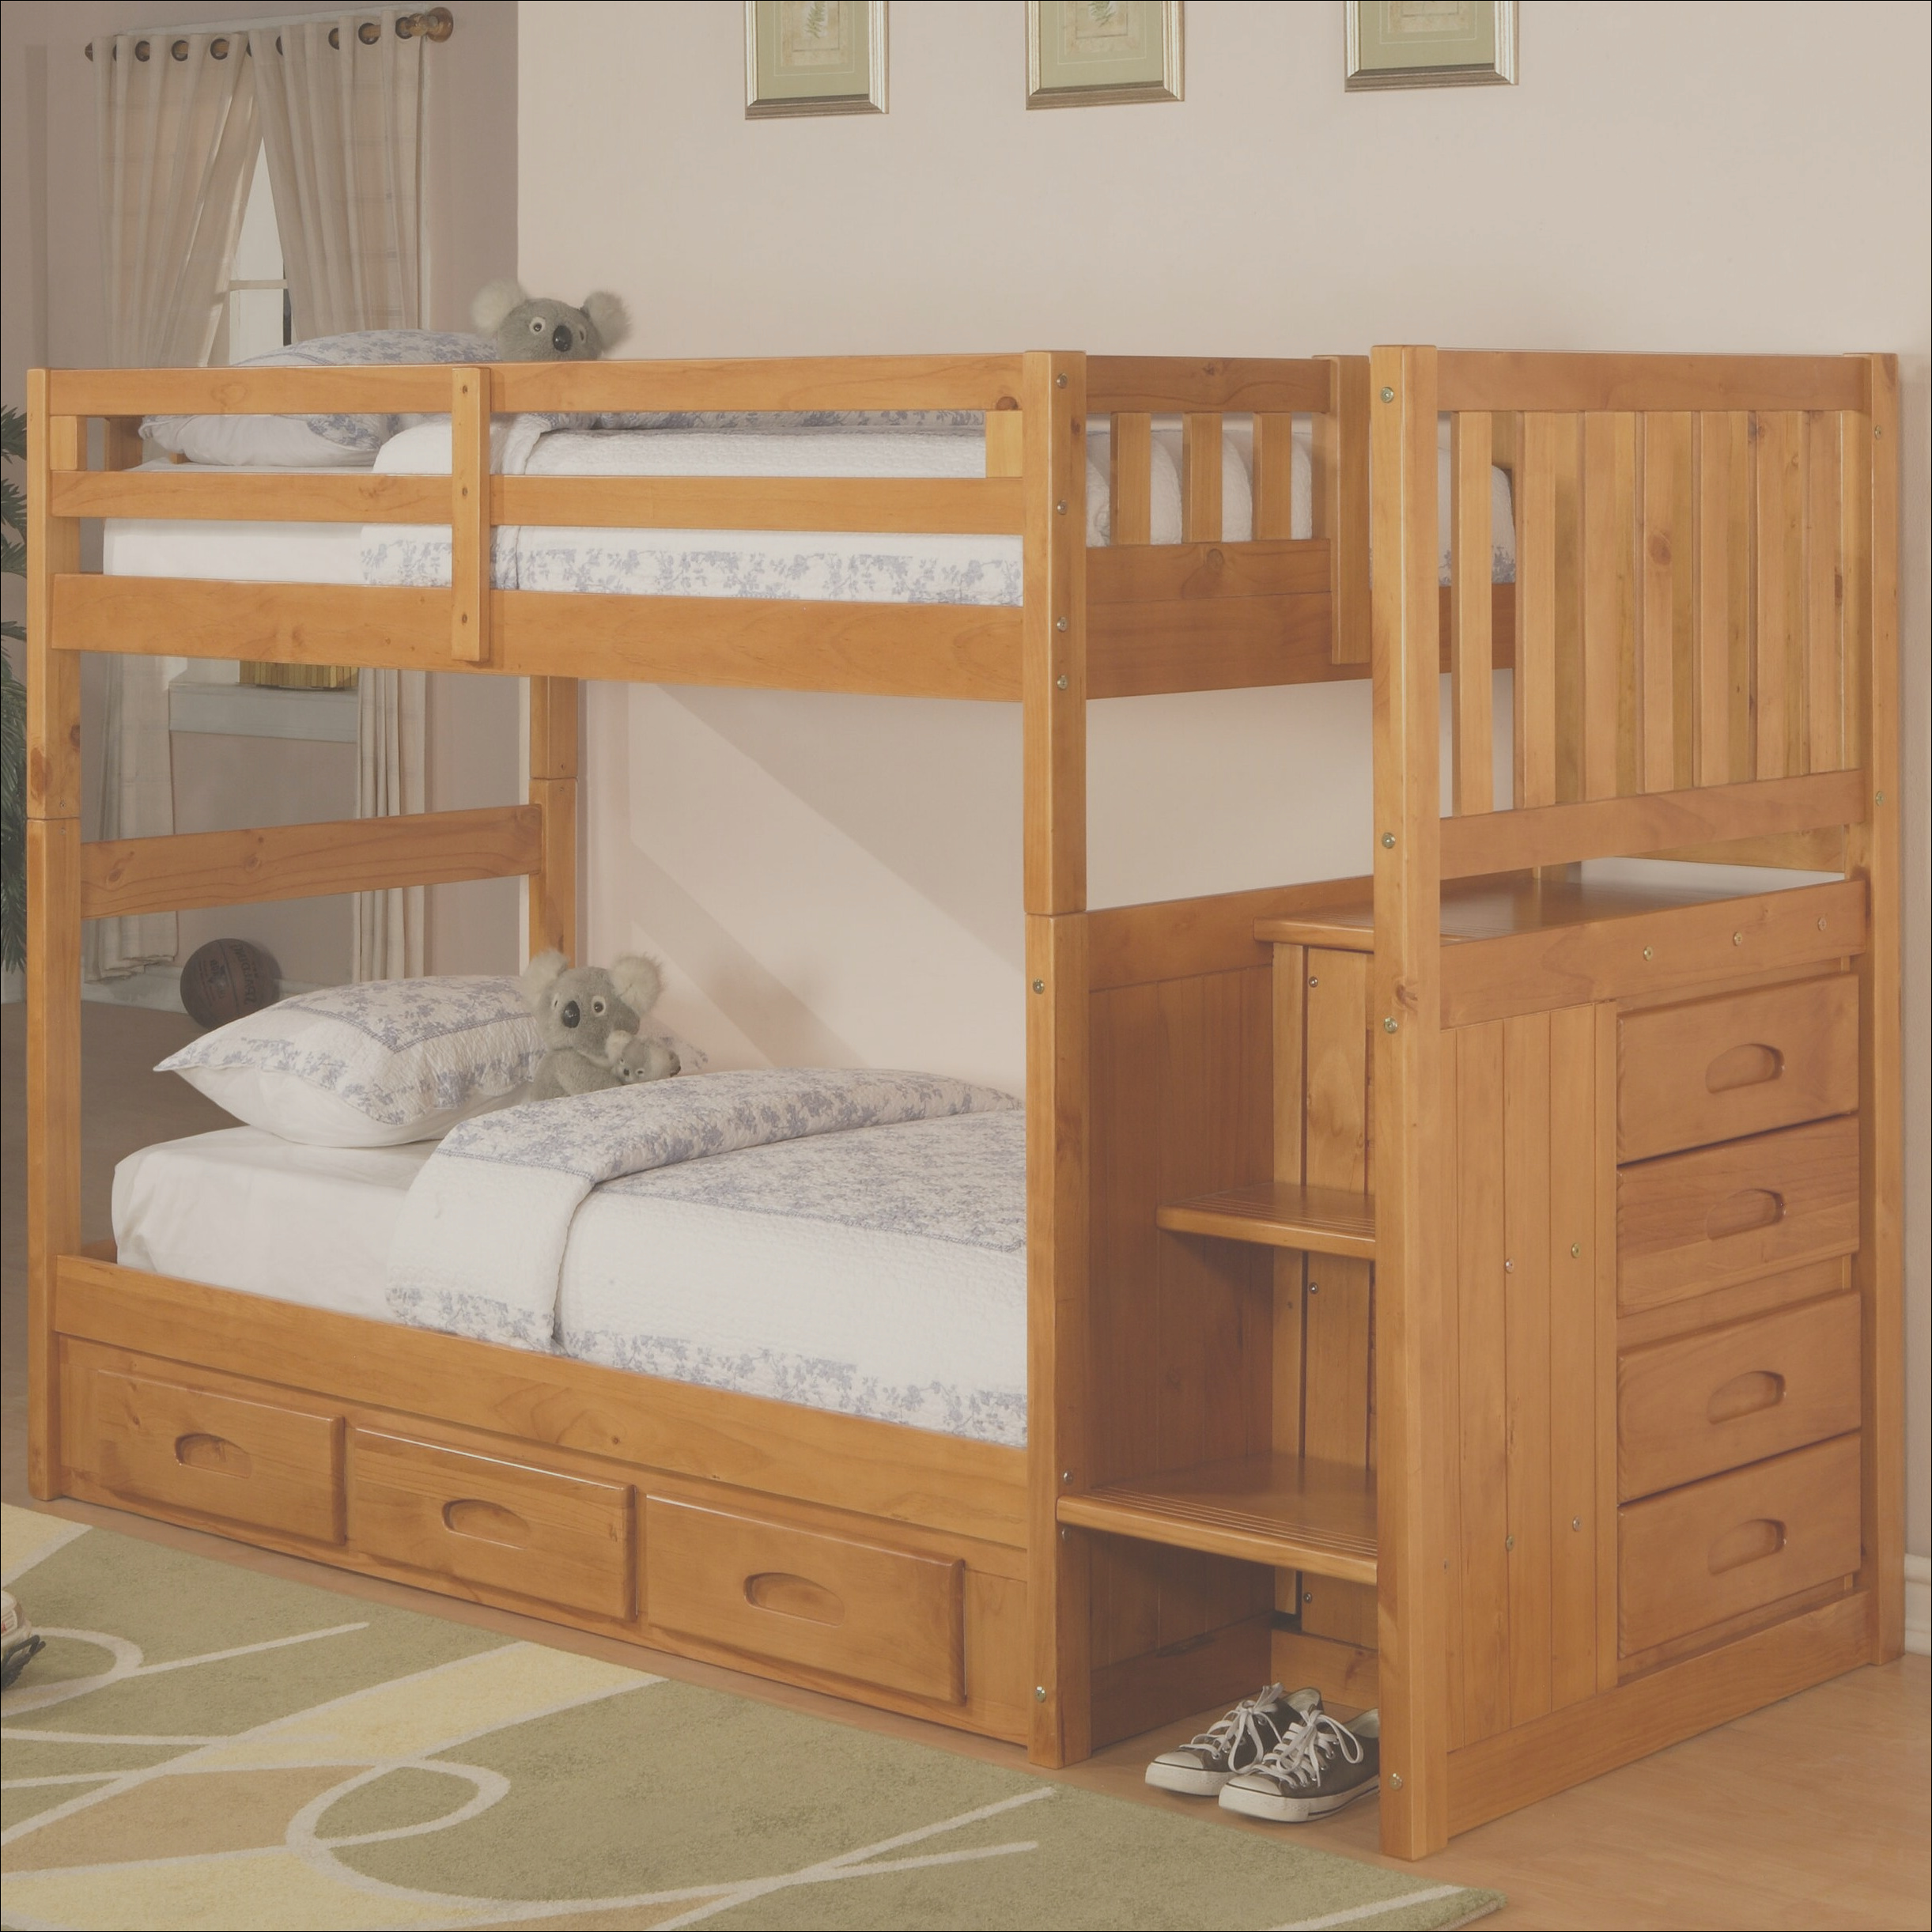 Discovery World Furniture Weston Twin over Twin Bunk Bed with Stairs and Storage 2814 DWF1004